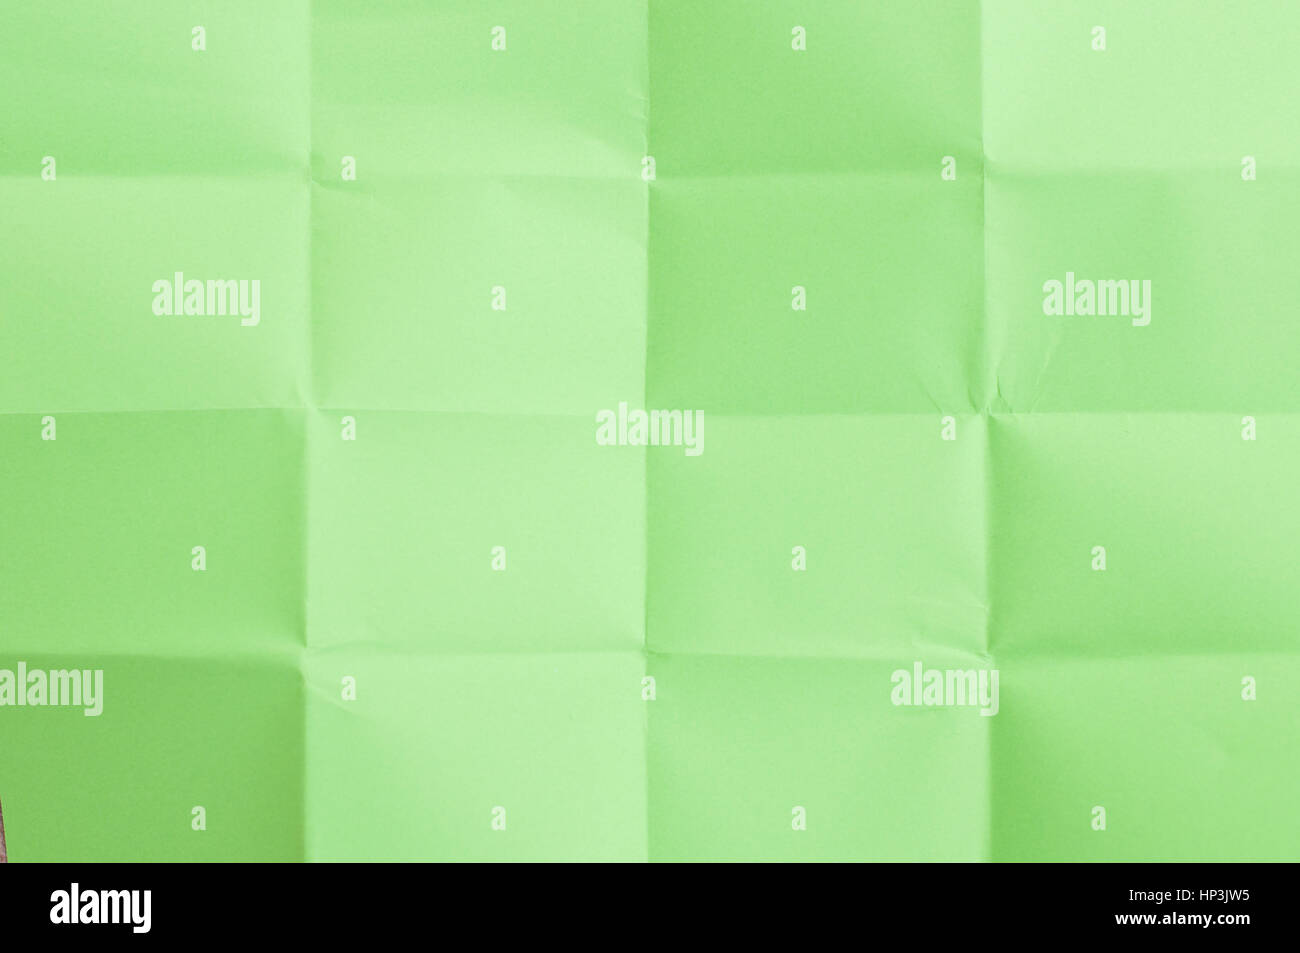 Green sheet of paper folded in sixteen parts - Stock Image